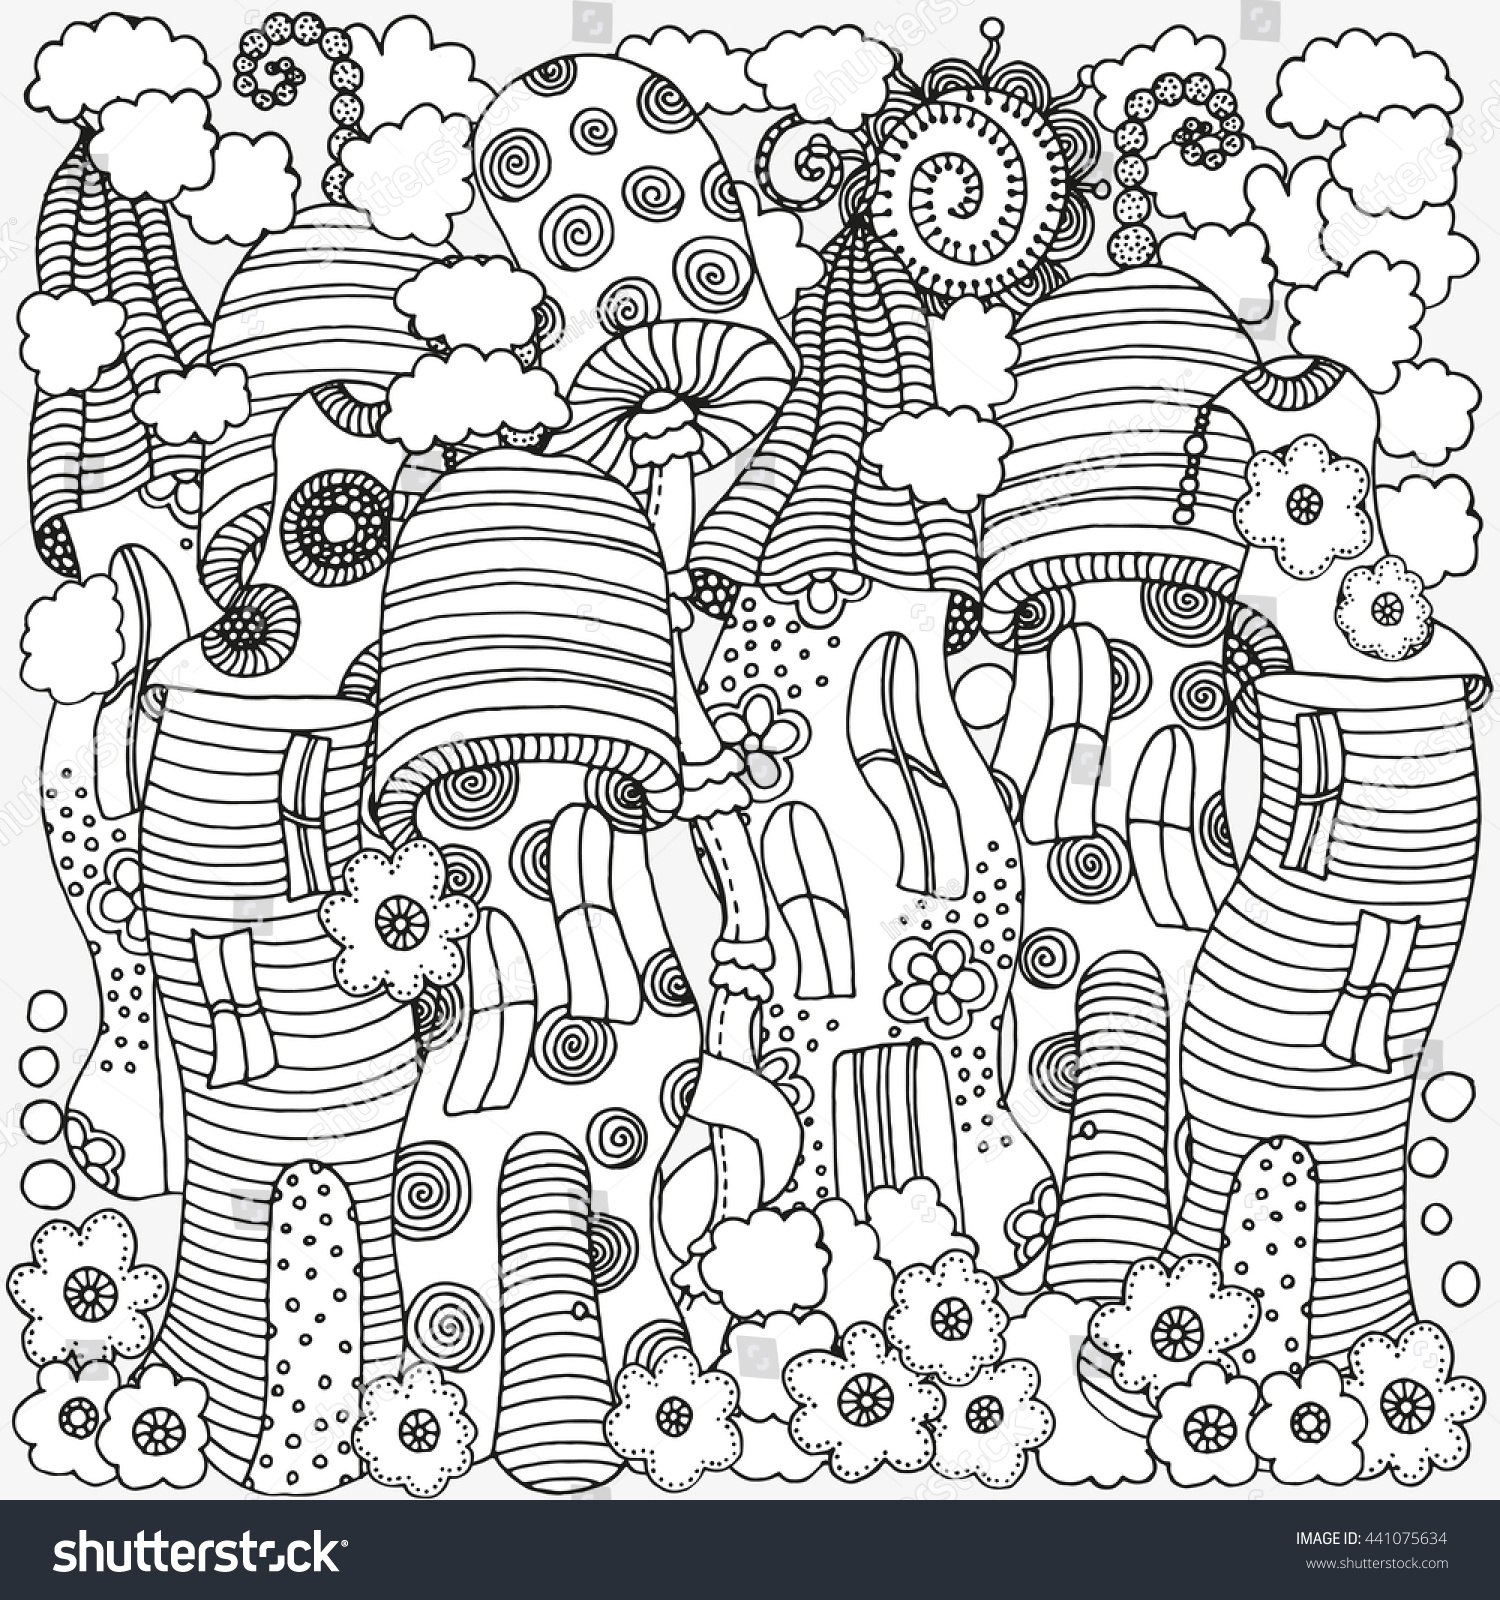 100 mushrooms coloring pages 1454 best coloring pages images on